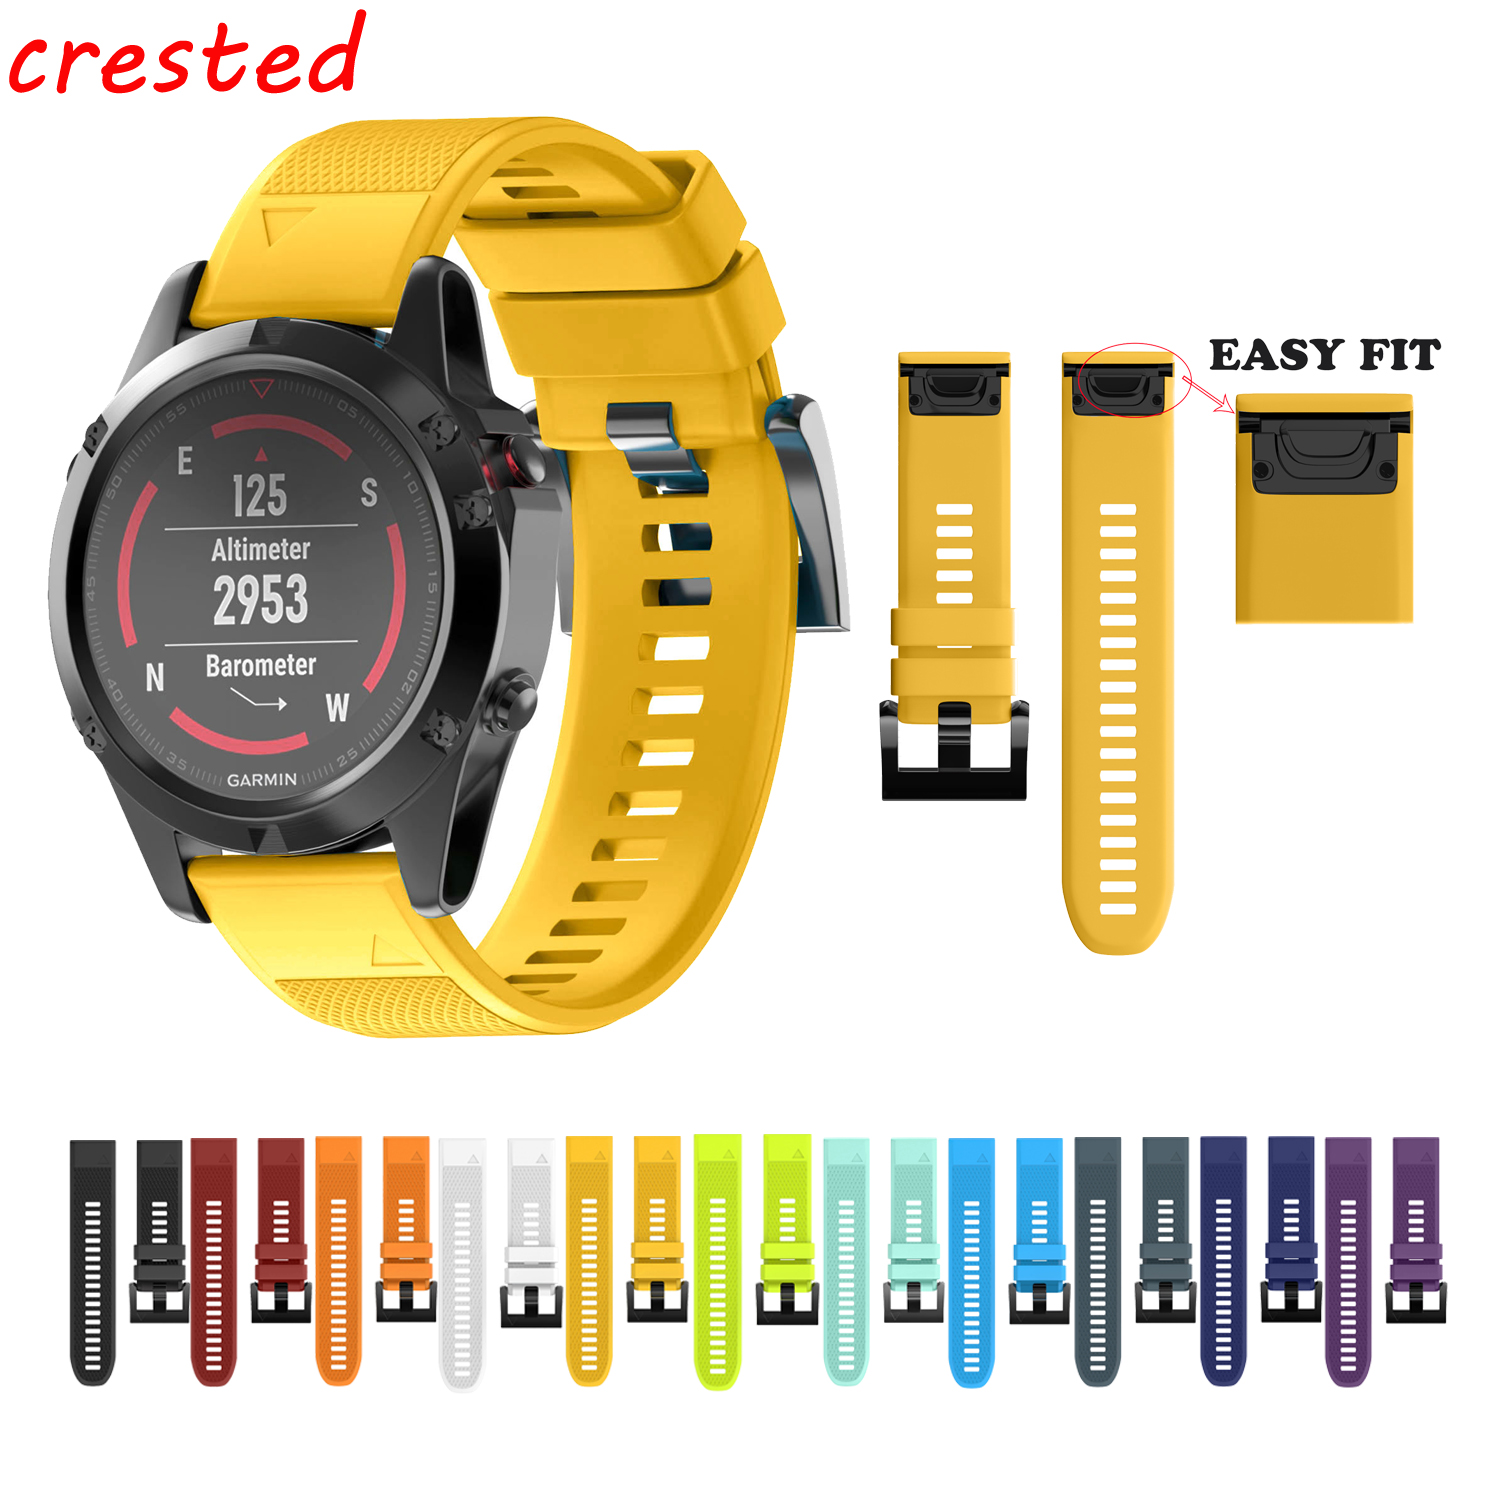 CRESTED silicone watch band for Garmin Fenix 5 GPS Watches Replacement soft band Silicagel Wrist Band yellow watchband фара fenix bc21r